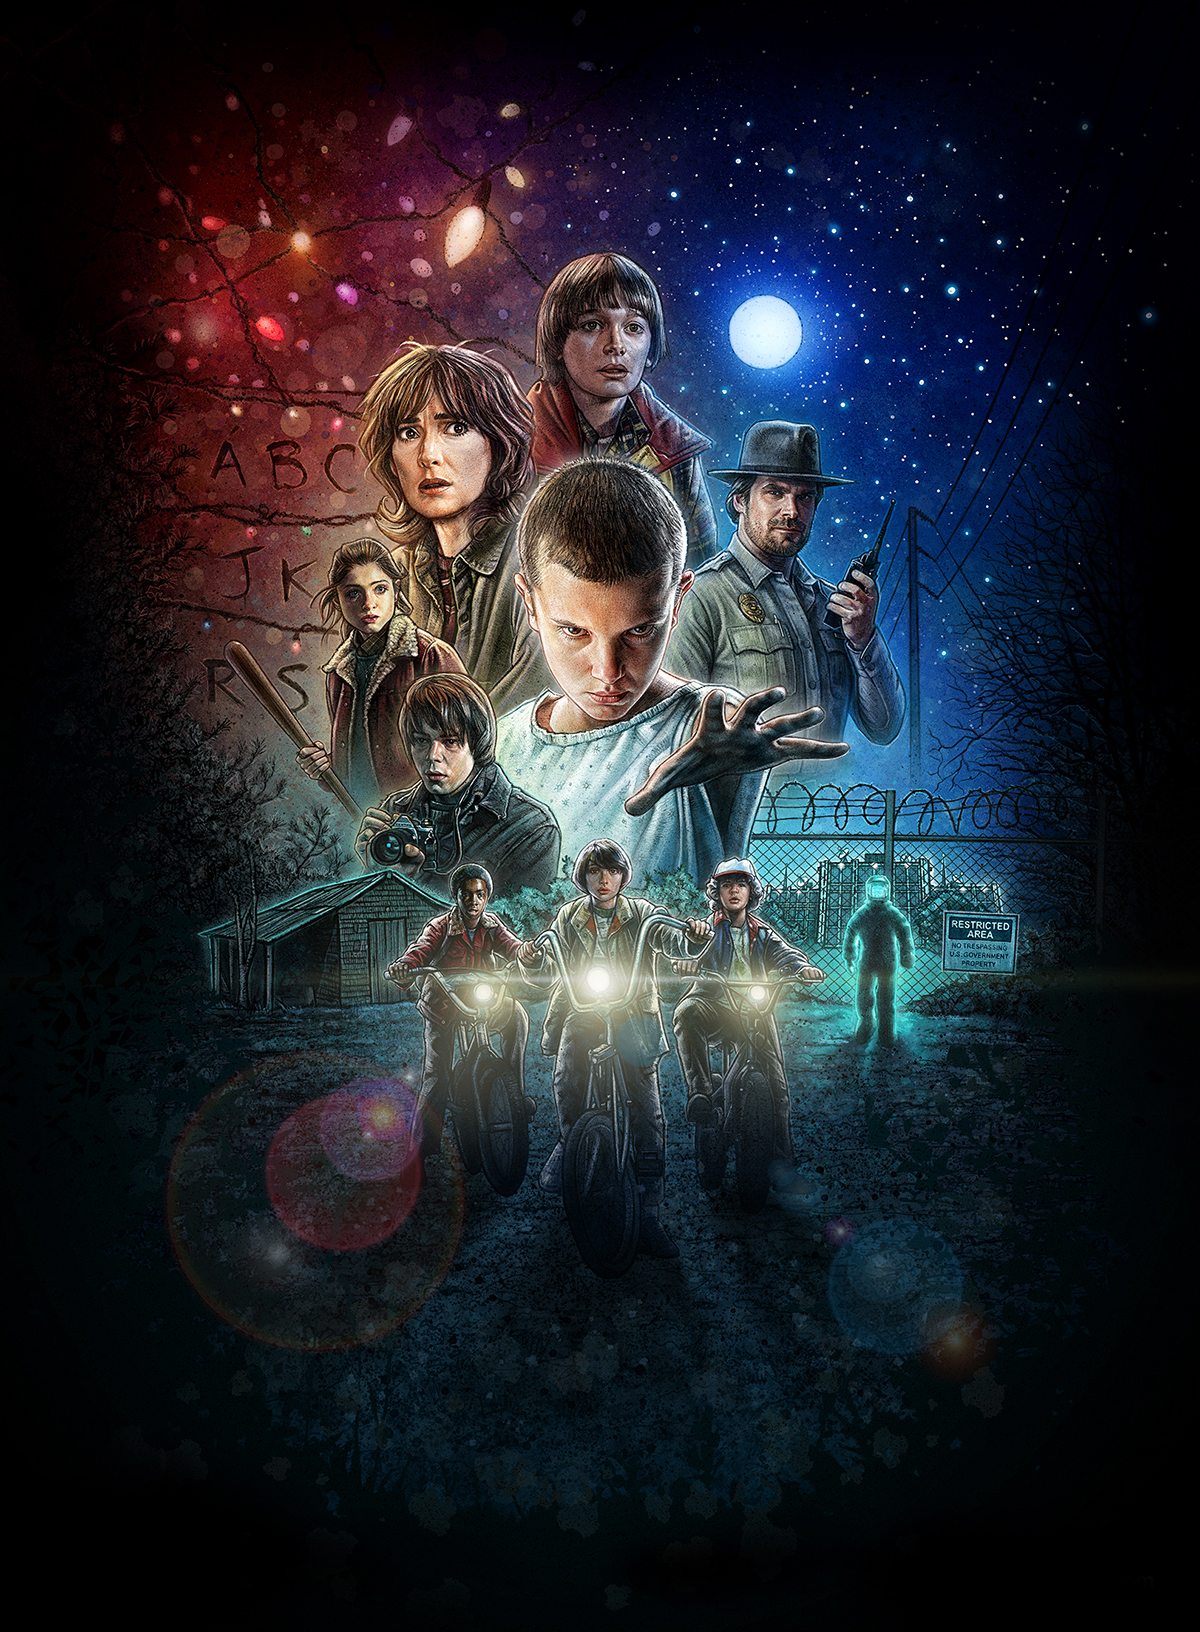 papel de parede iphone android Stranger Things